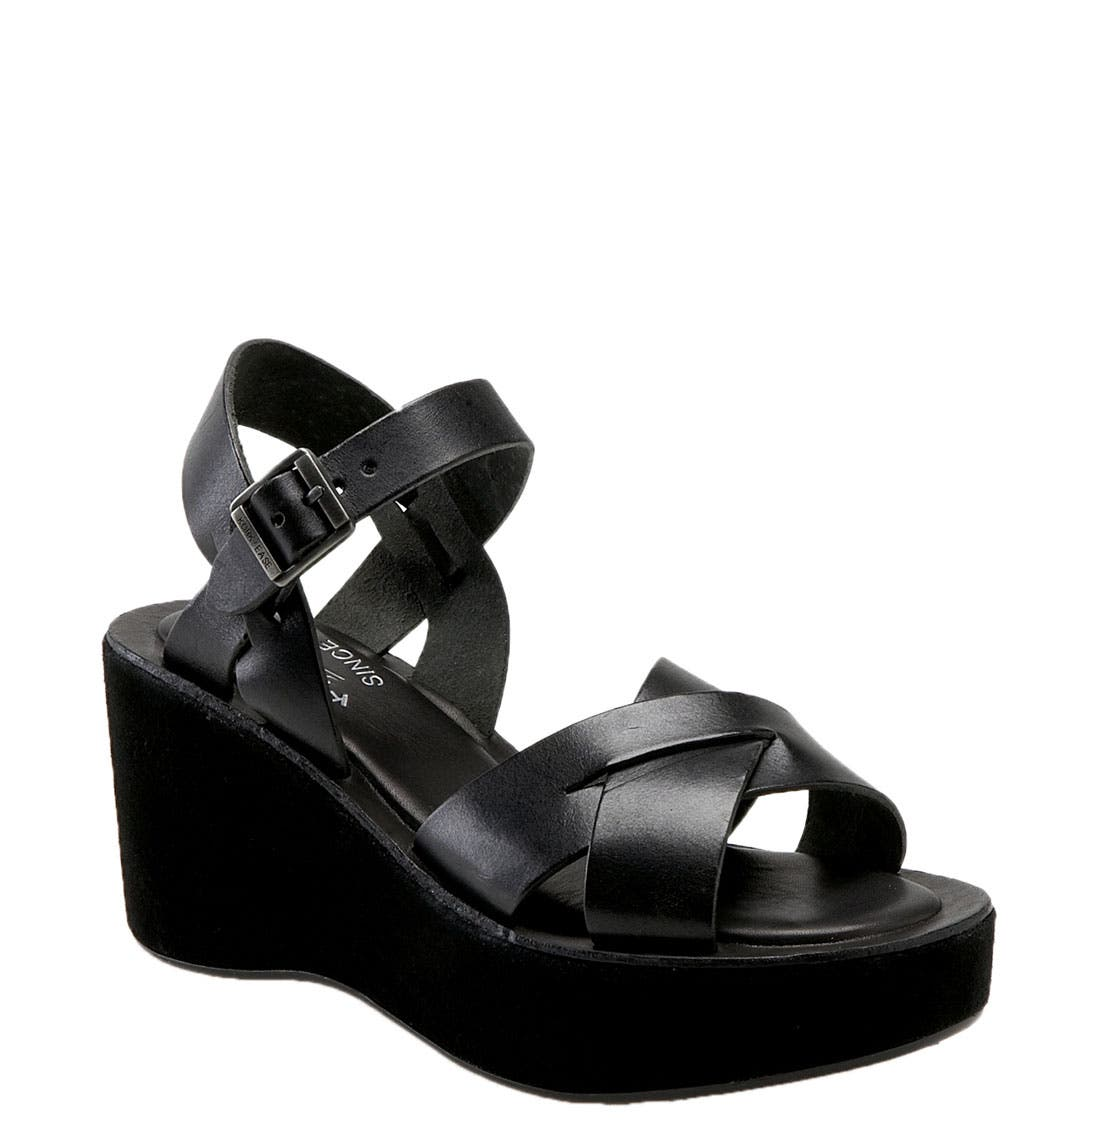 Alternate Image 1 Selected - Kork-Ease 'Ava' Wedge Sandal